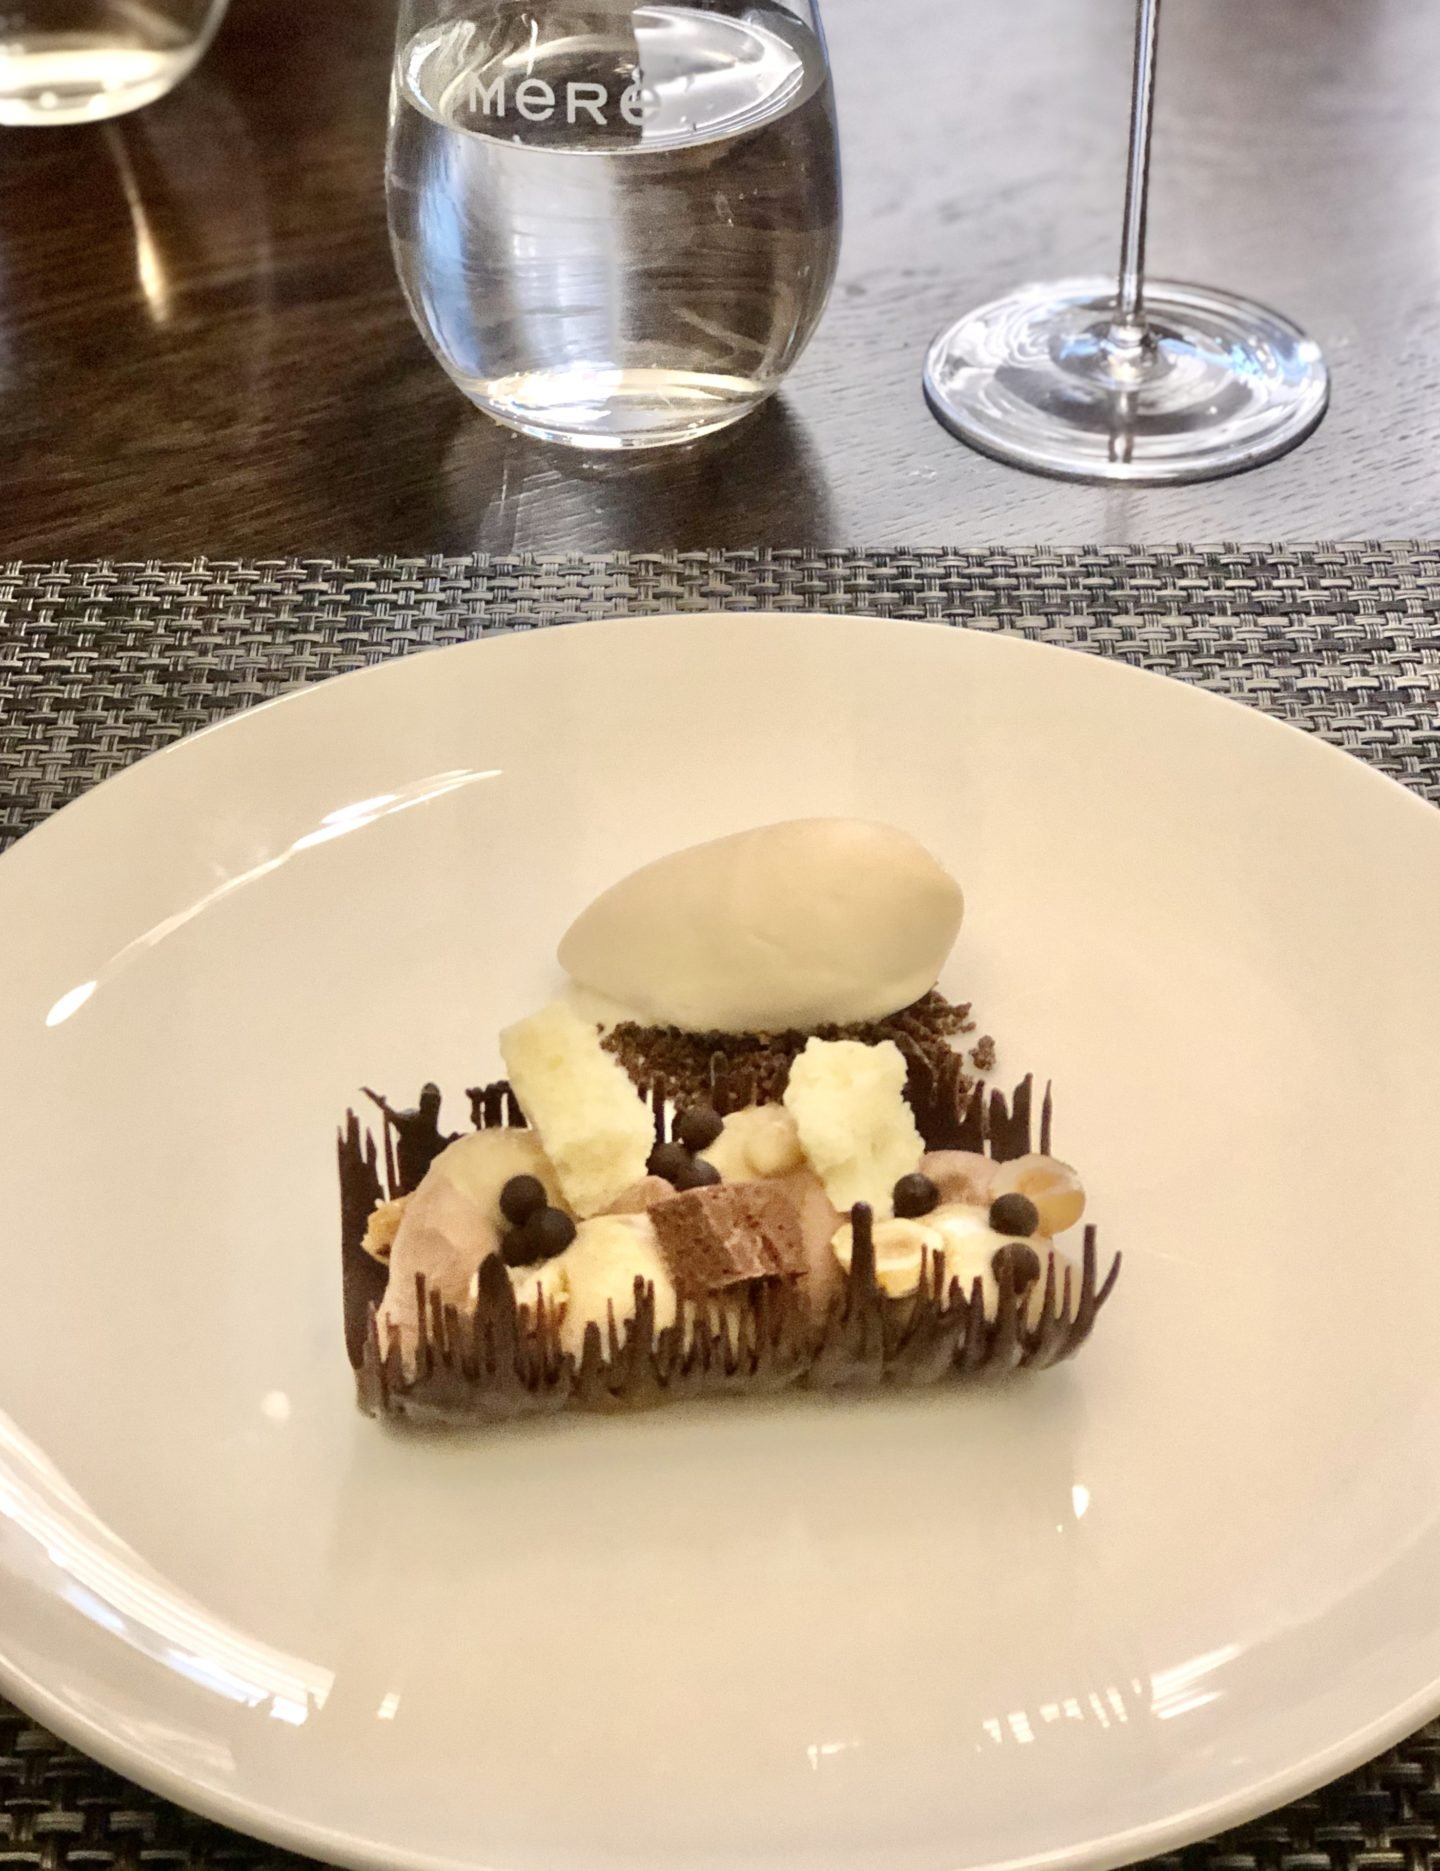 Chocolate and Hazelnut dessert at the Mere